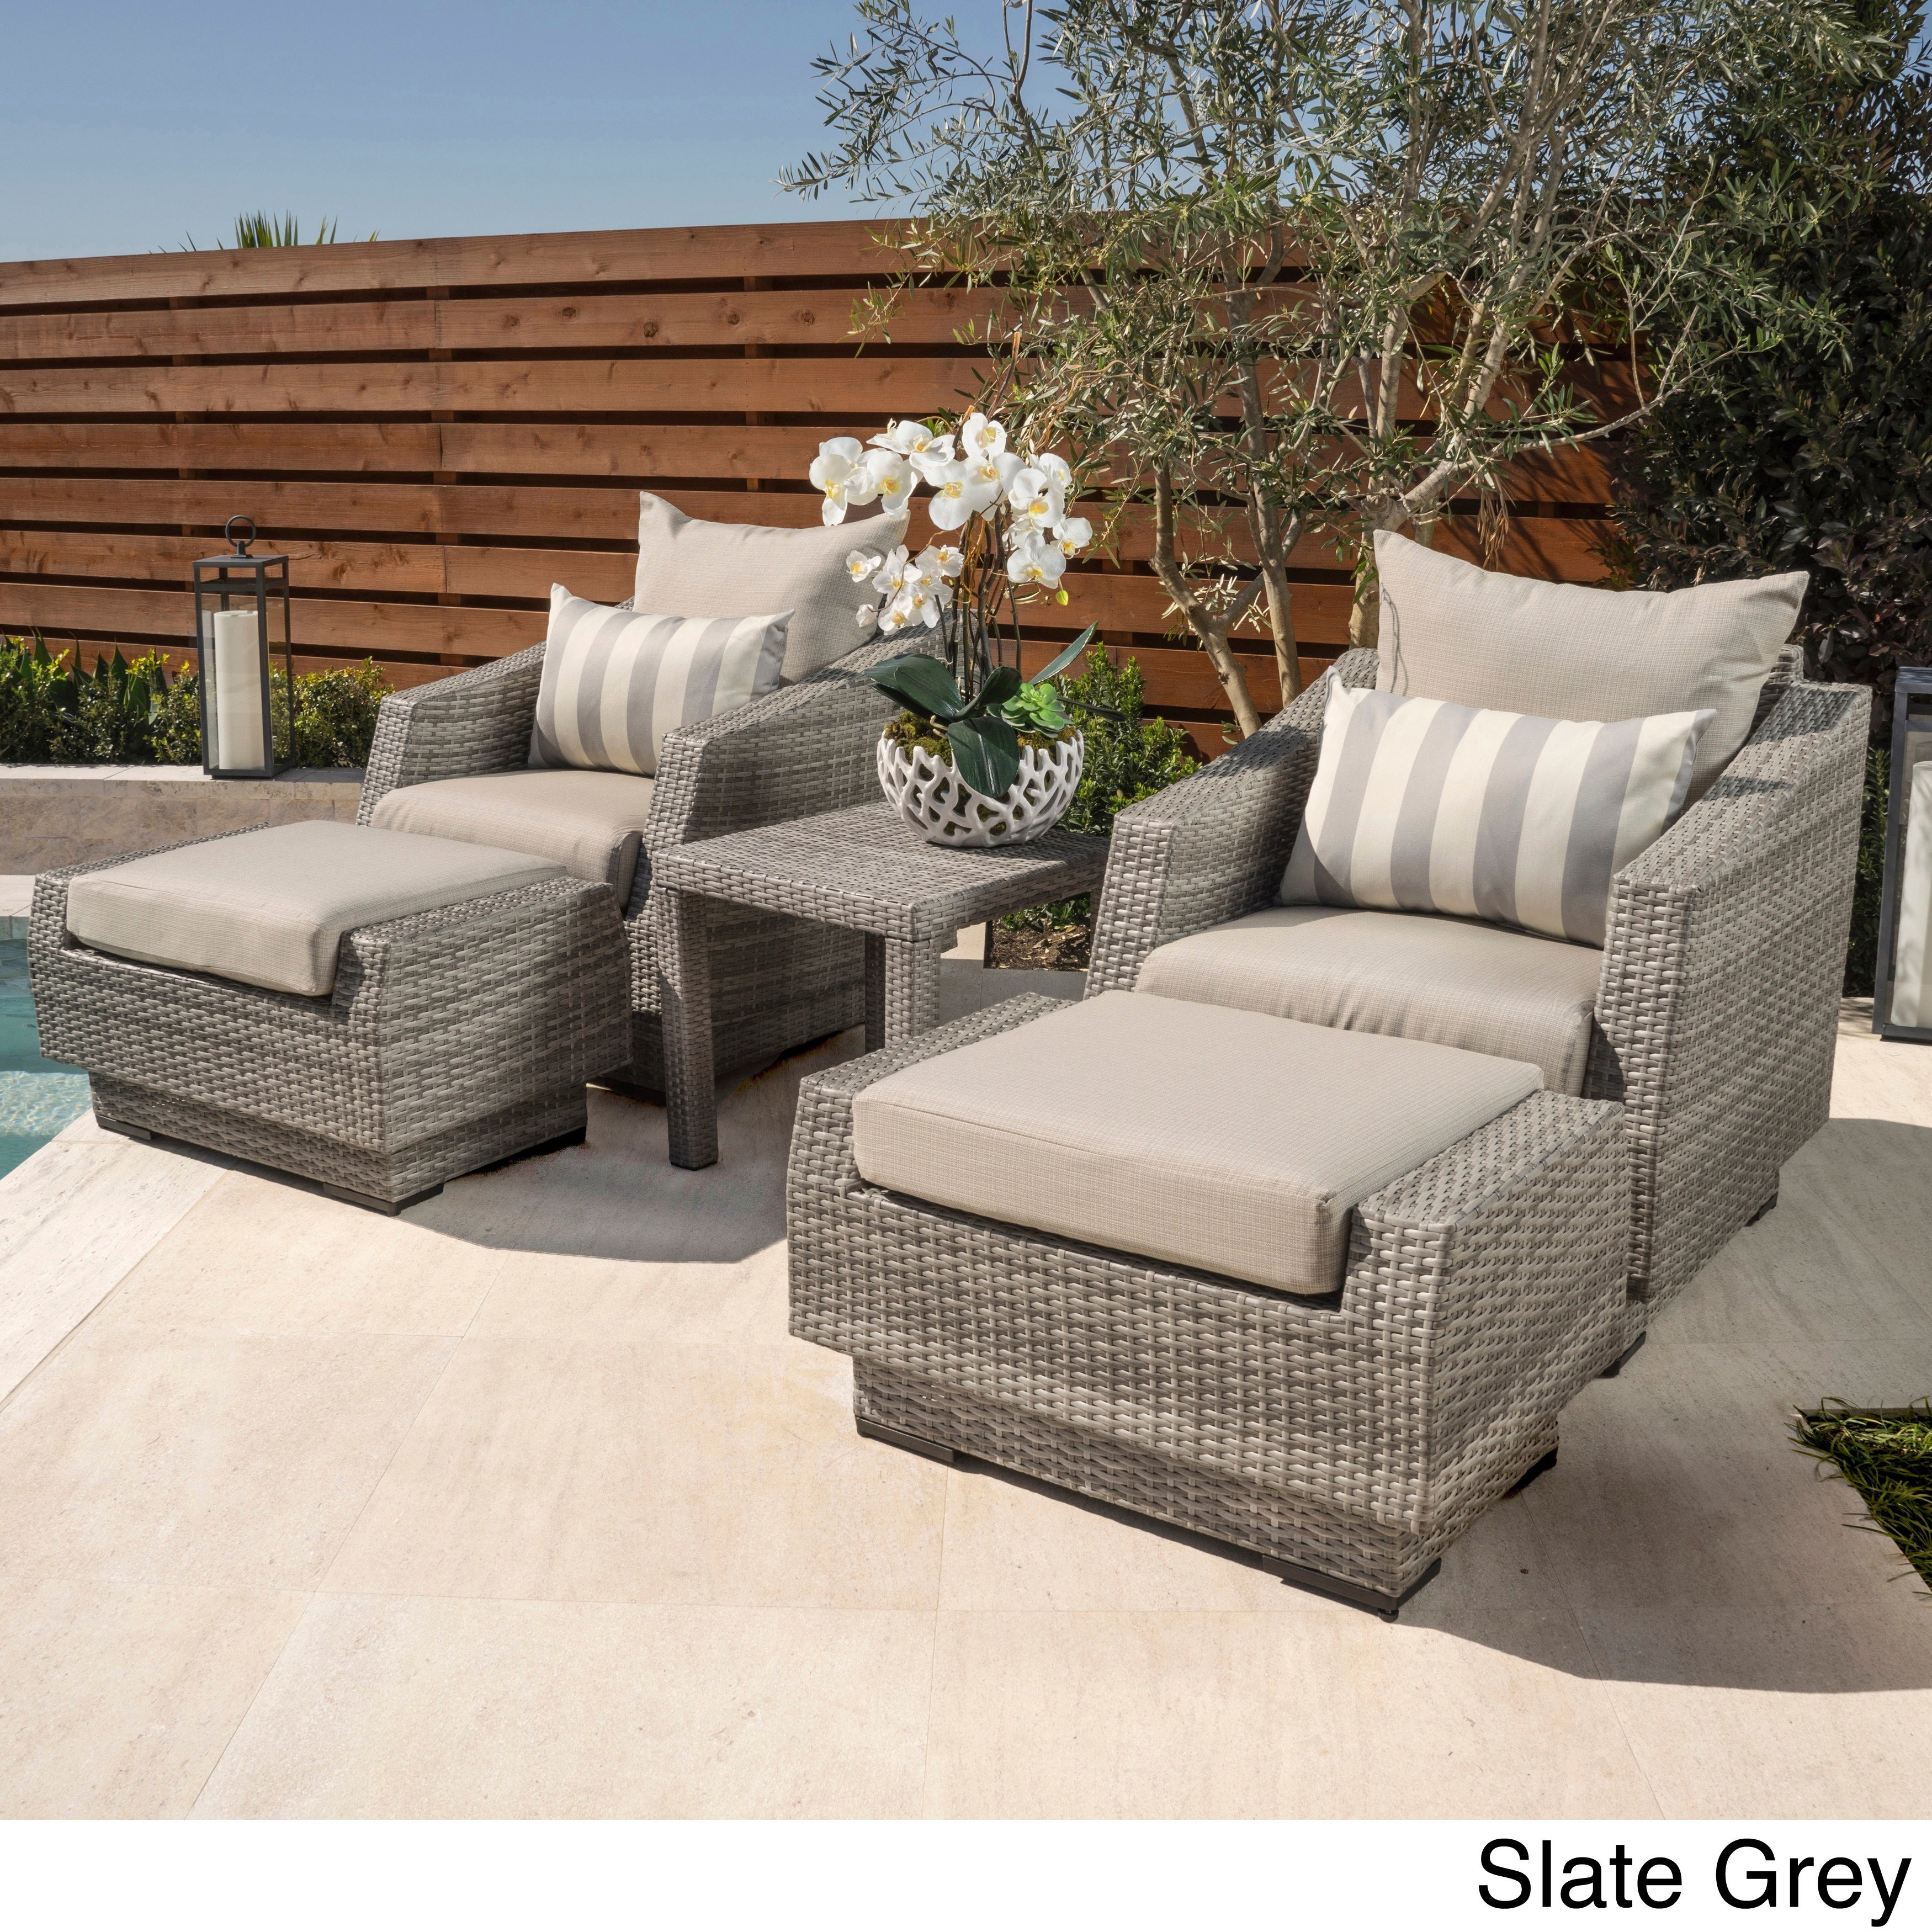 Terrific Rst Brands Cannes 5 Piece Club Chair Ottomans And Side Table Cjindustries Chair Design For Home Cjindustriesco